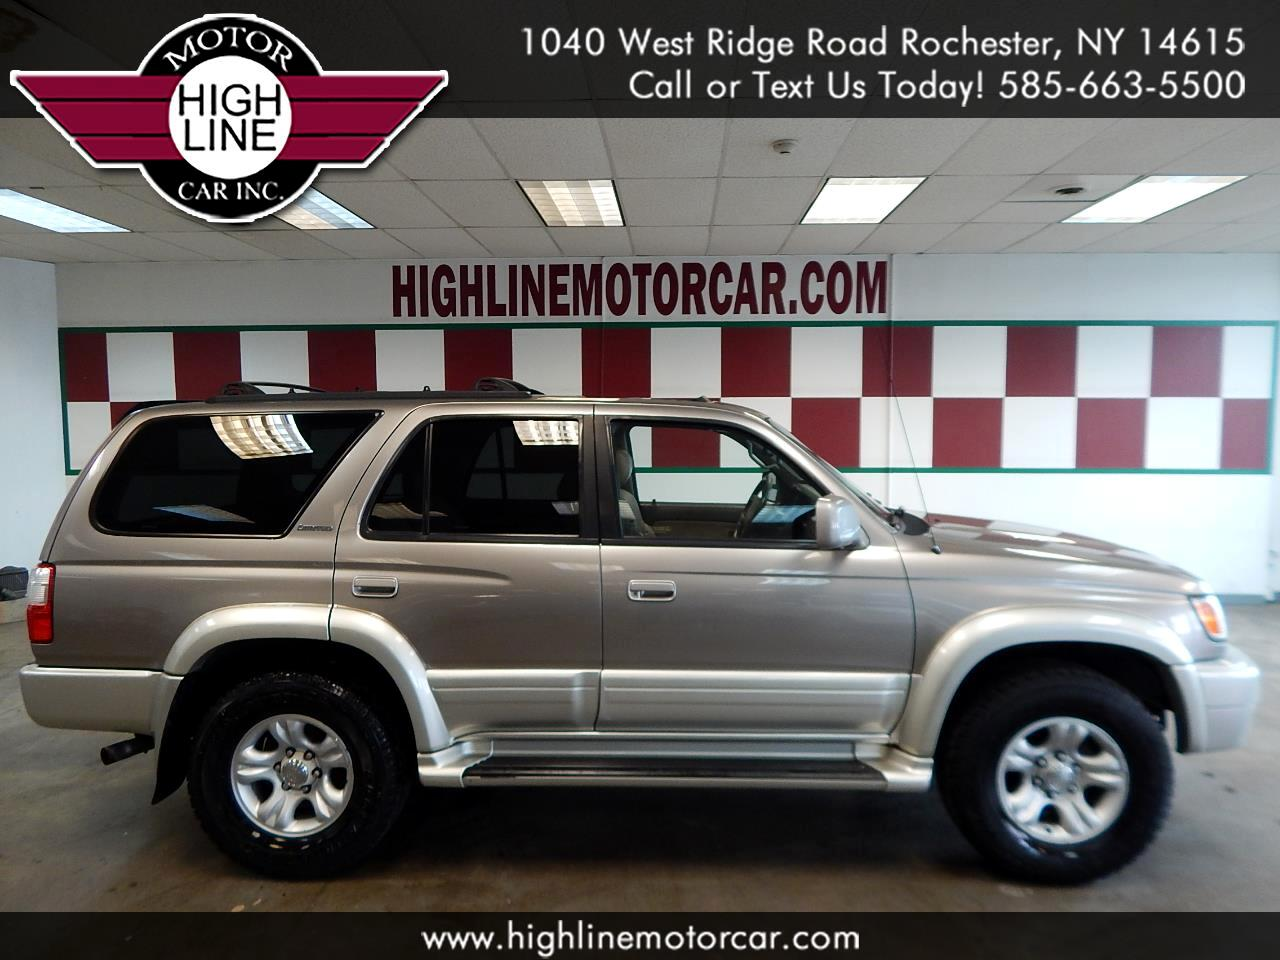 2001 Toyota 4Runner 4dr Limited 3.4L Auto (Natl)